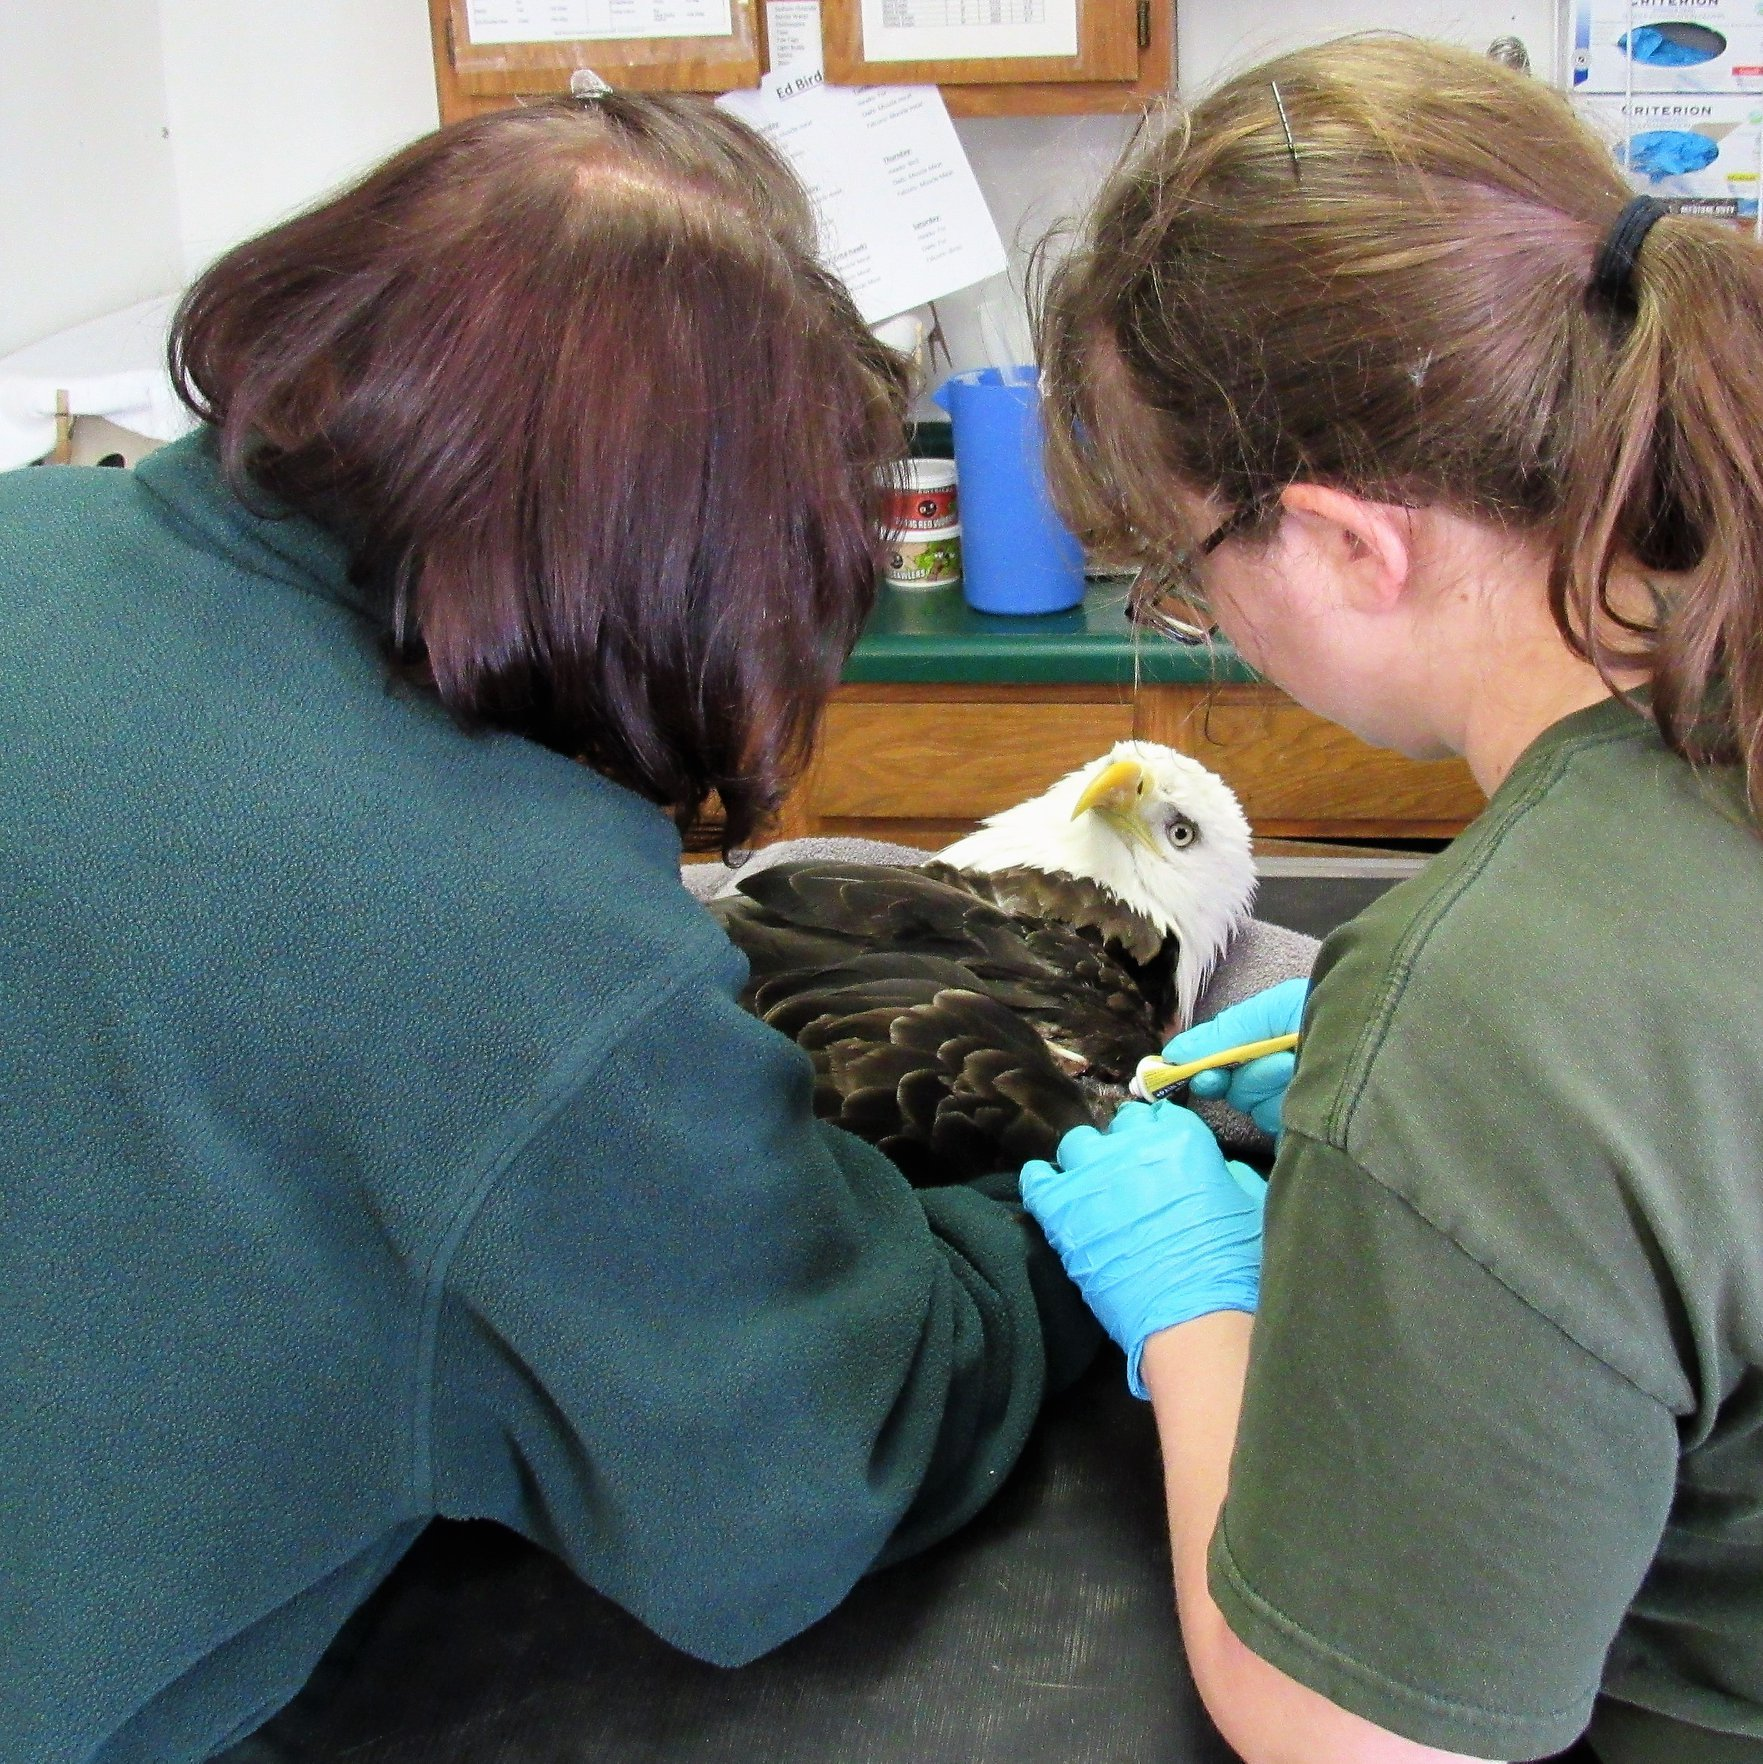 Treatment was started quickly to treat the bald eagles lead poisoning.